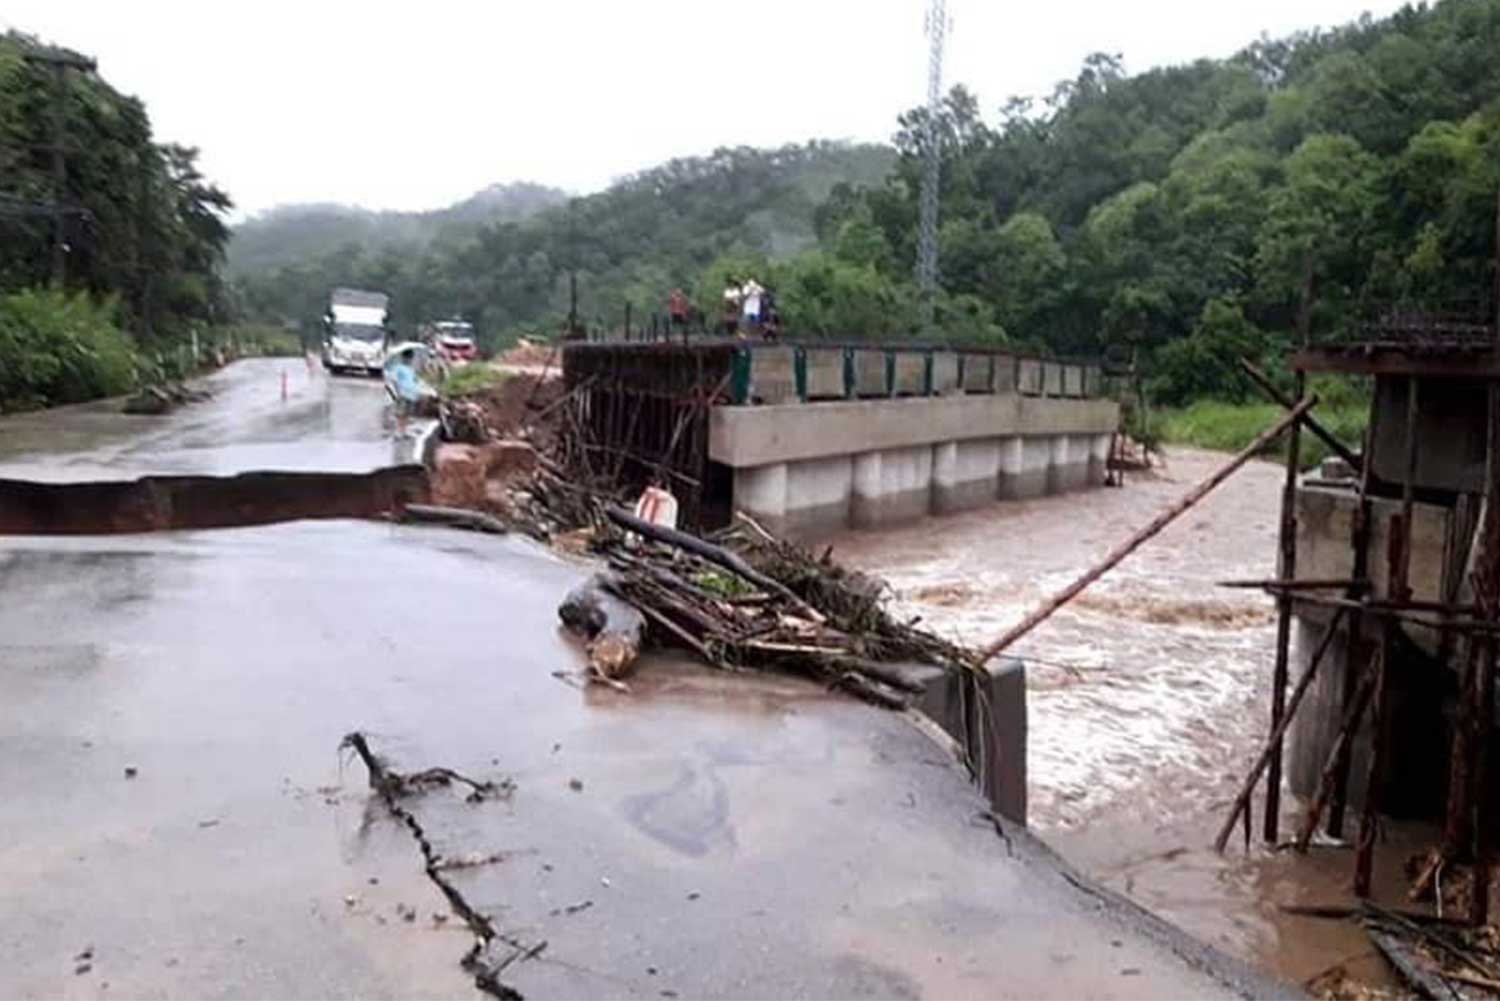 Damage to the road took place between kilometre makers 32 and 36 in Doi Saket district of Chiang Mai. (Photo by Phanumet Tanraksa)